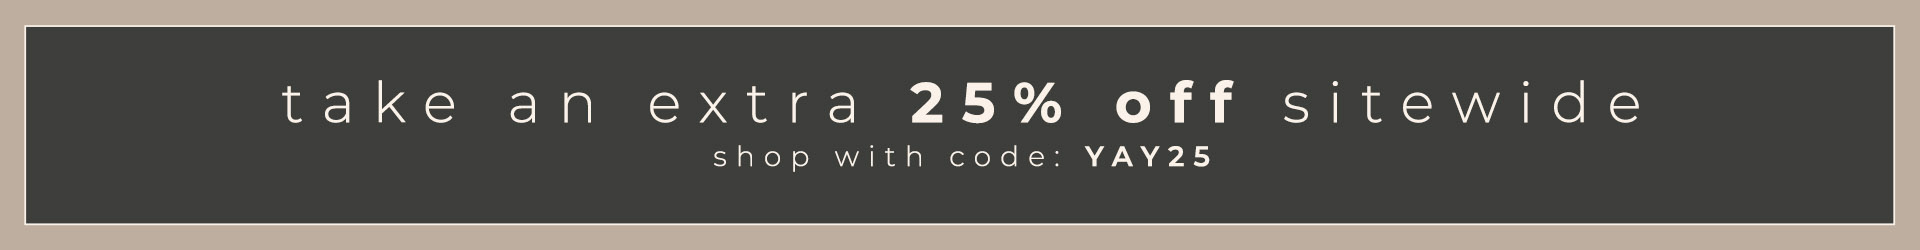 take an extra 25% off sitewide   shop with code YAY25